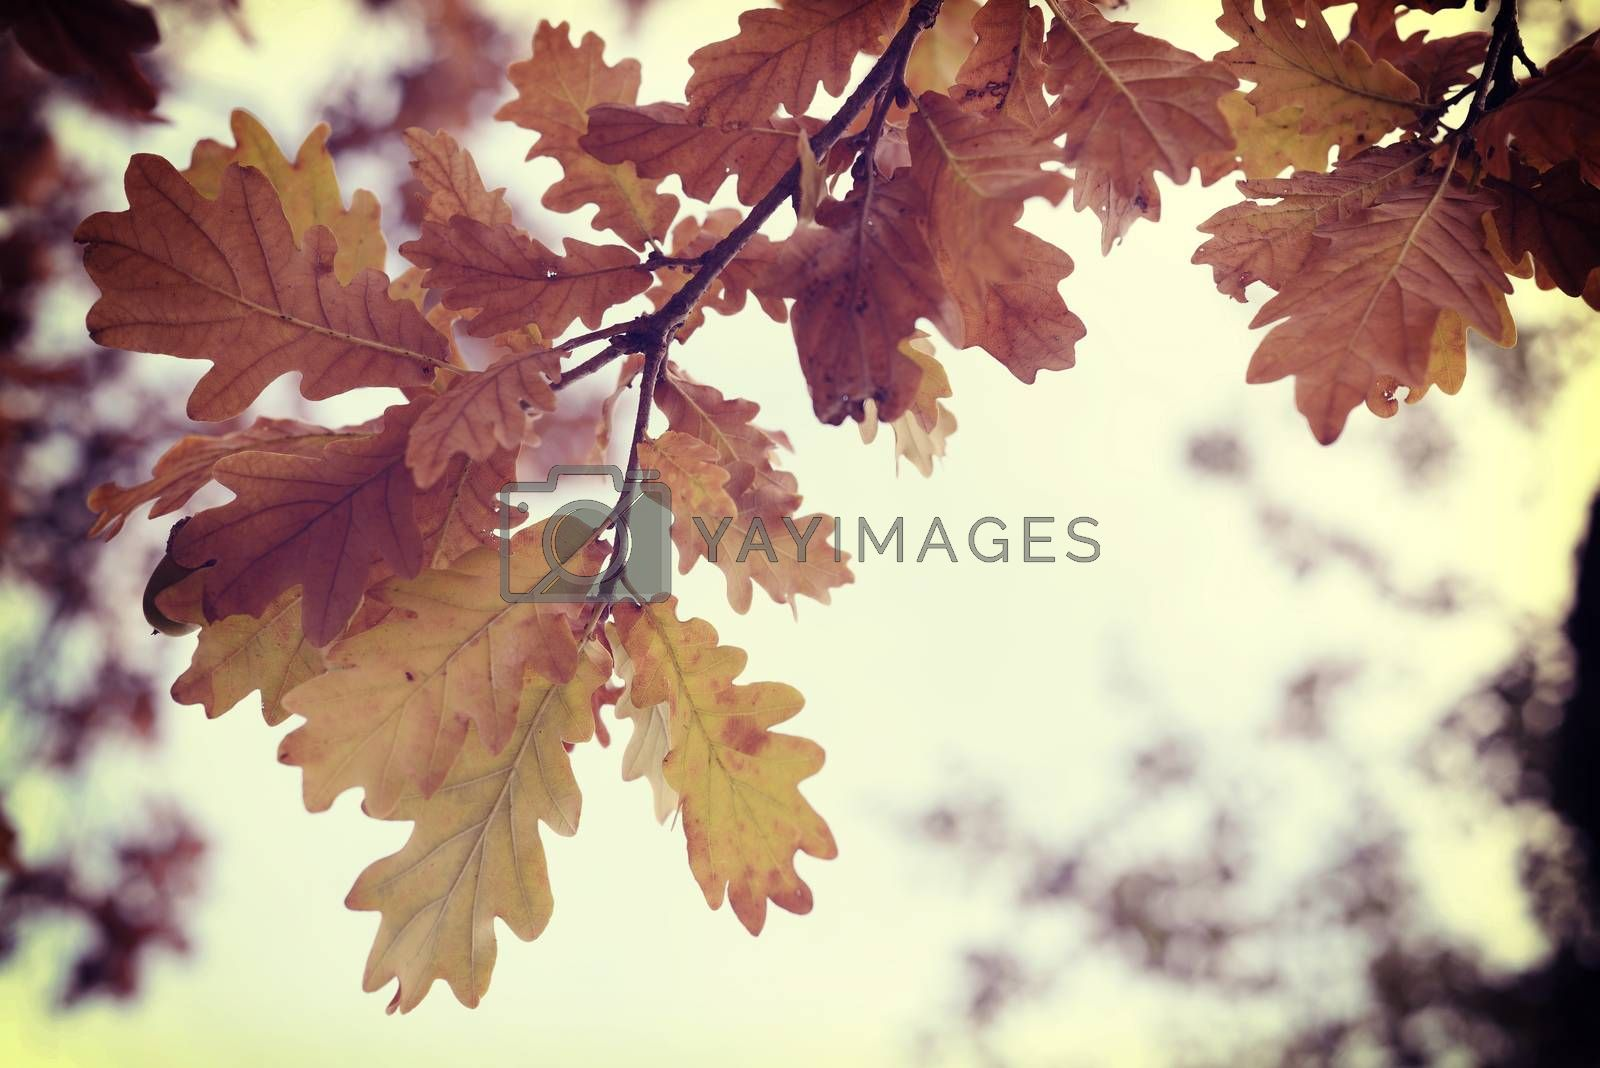 Fall season oak autumn tree leaves close up in sunset background with vintage style filter.